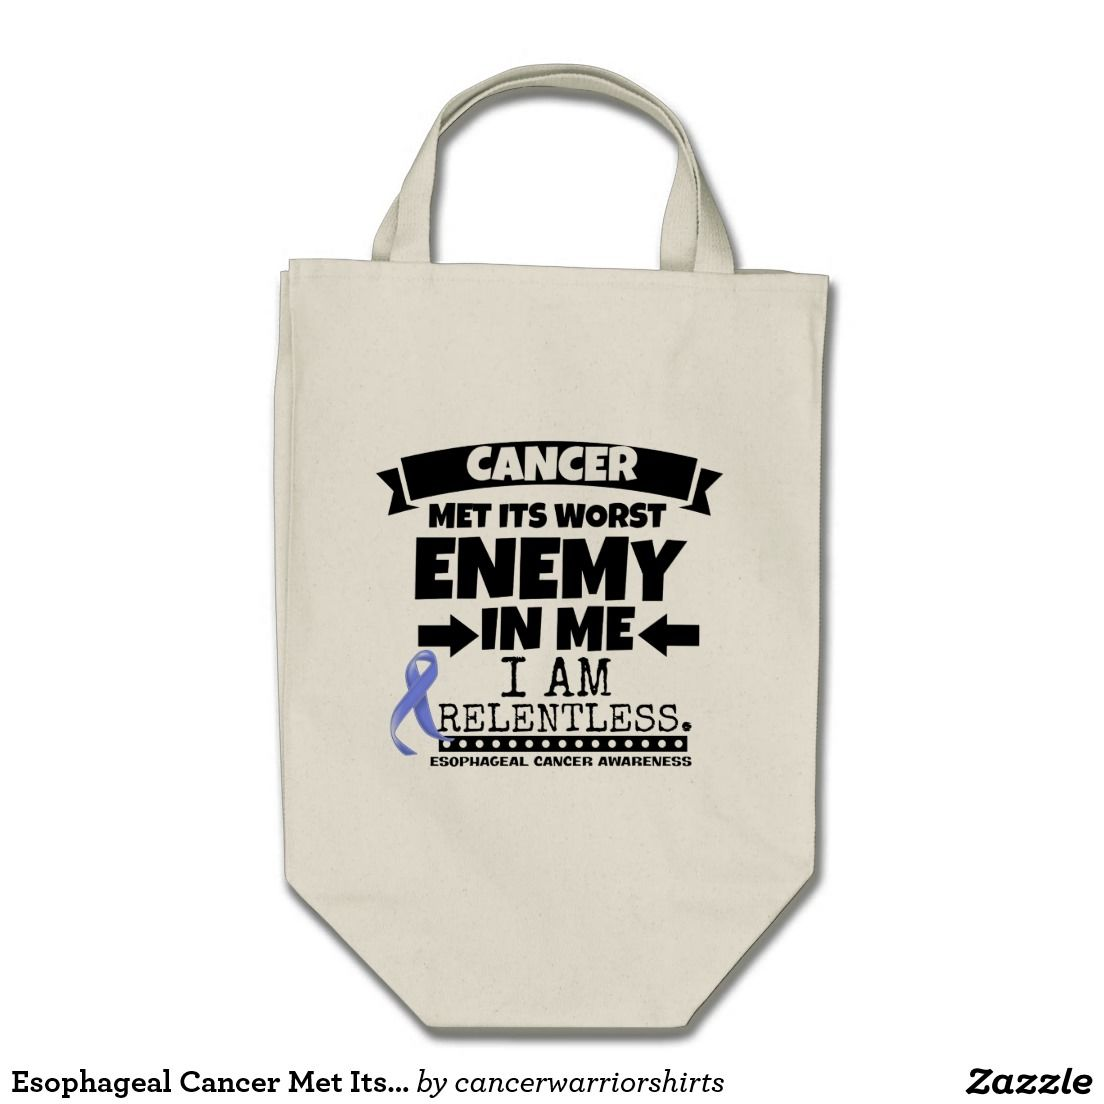 Esophageal Cancer Met Its Worst Enemy in Me Grocery Tote Bag